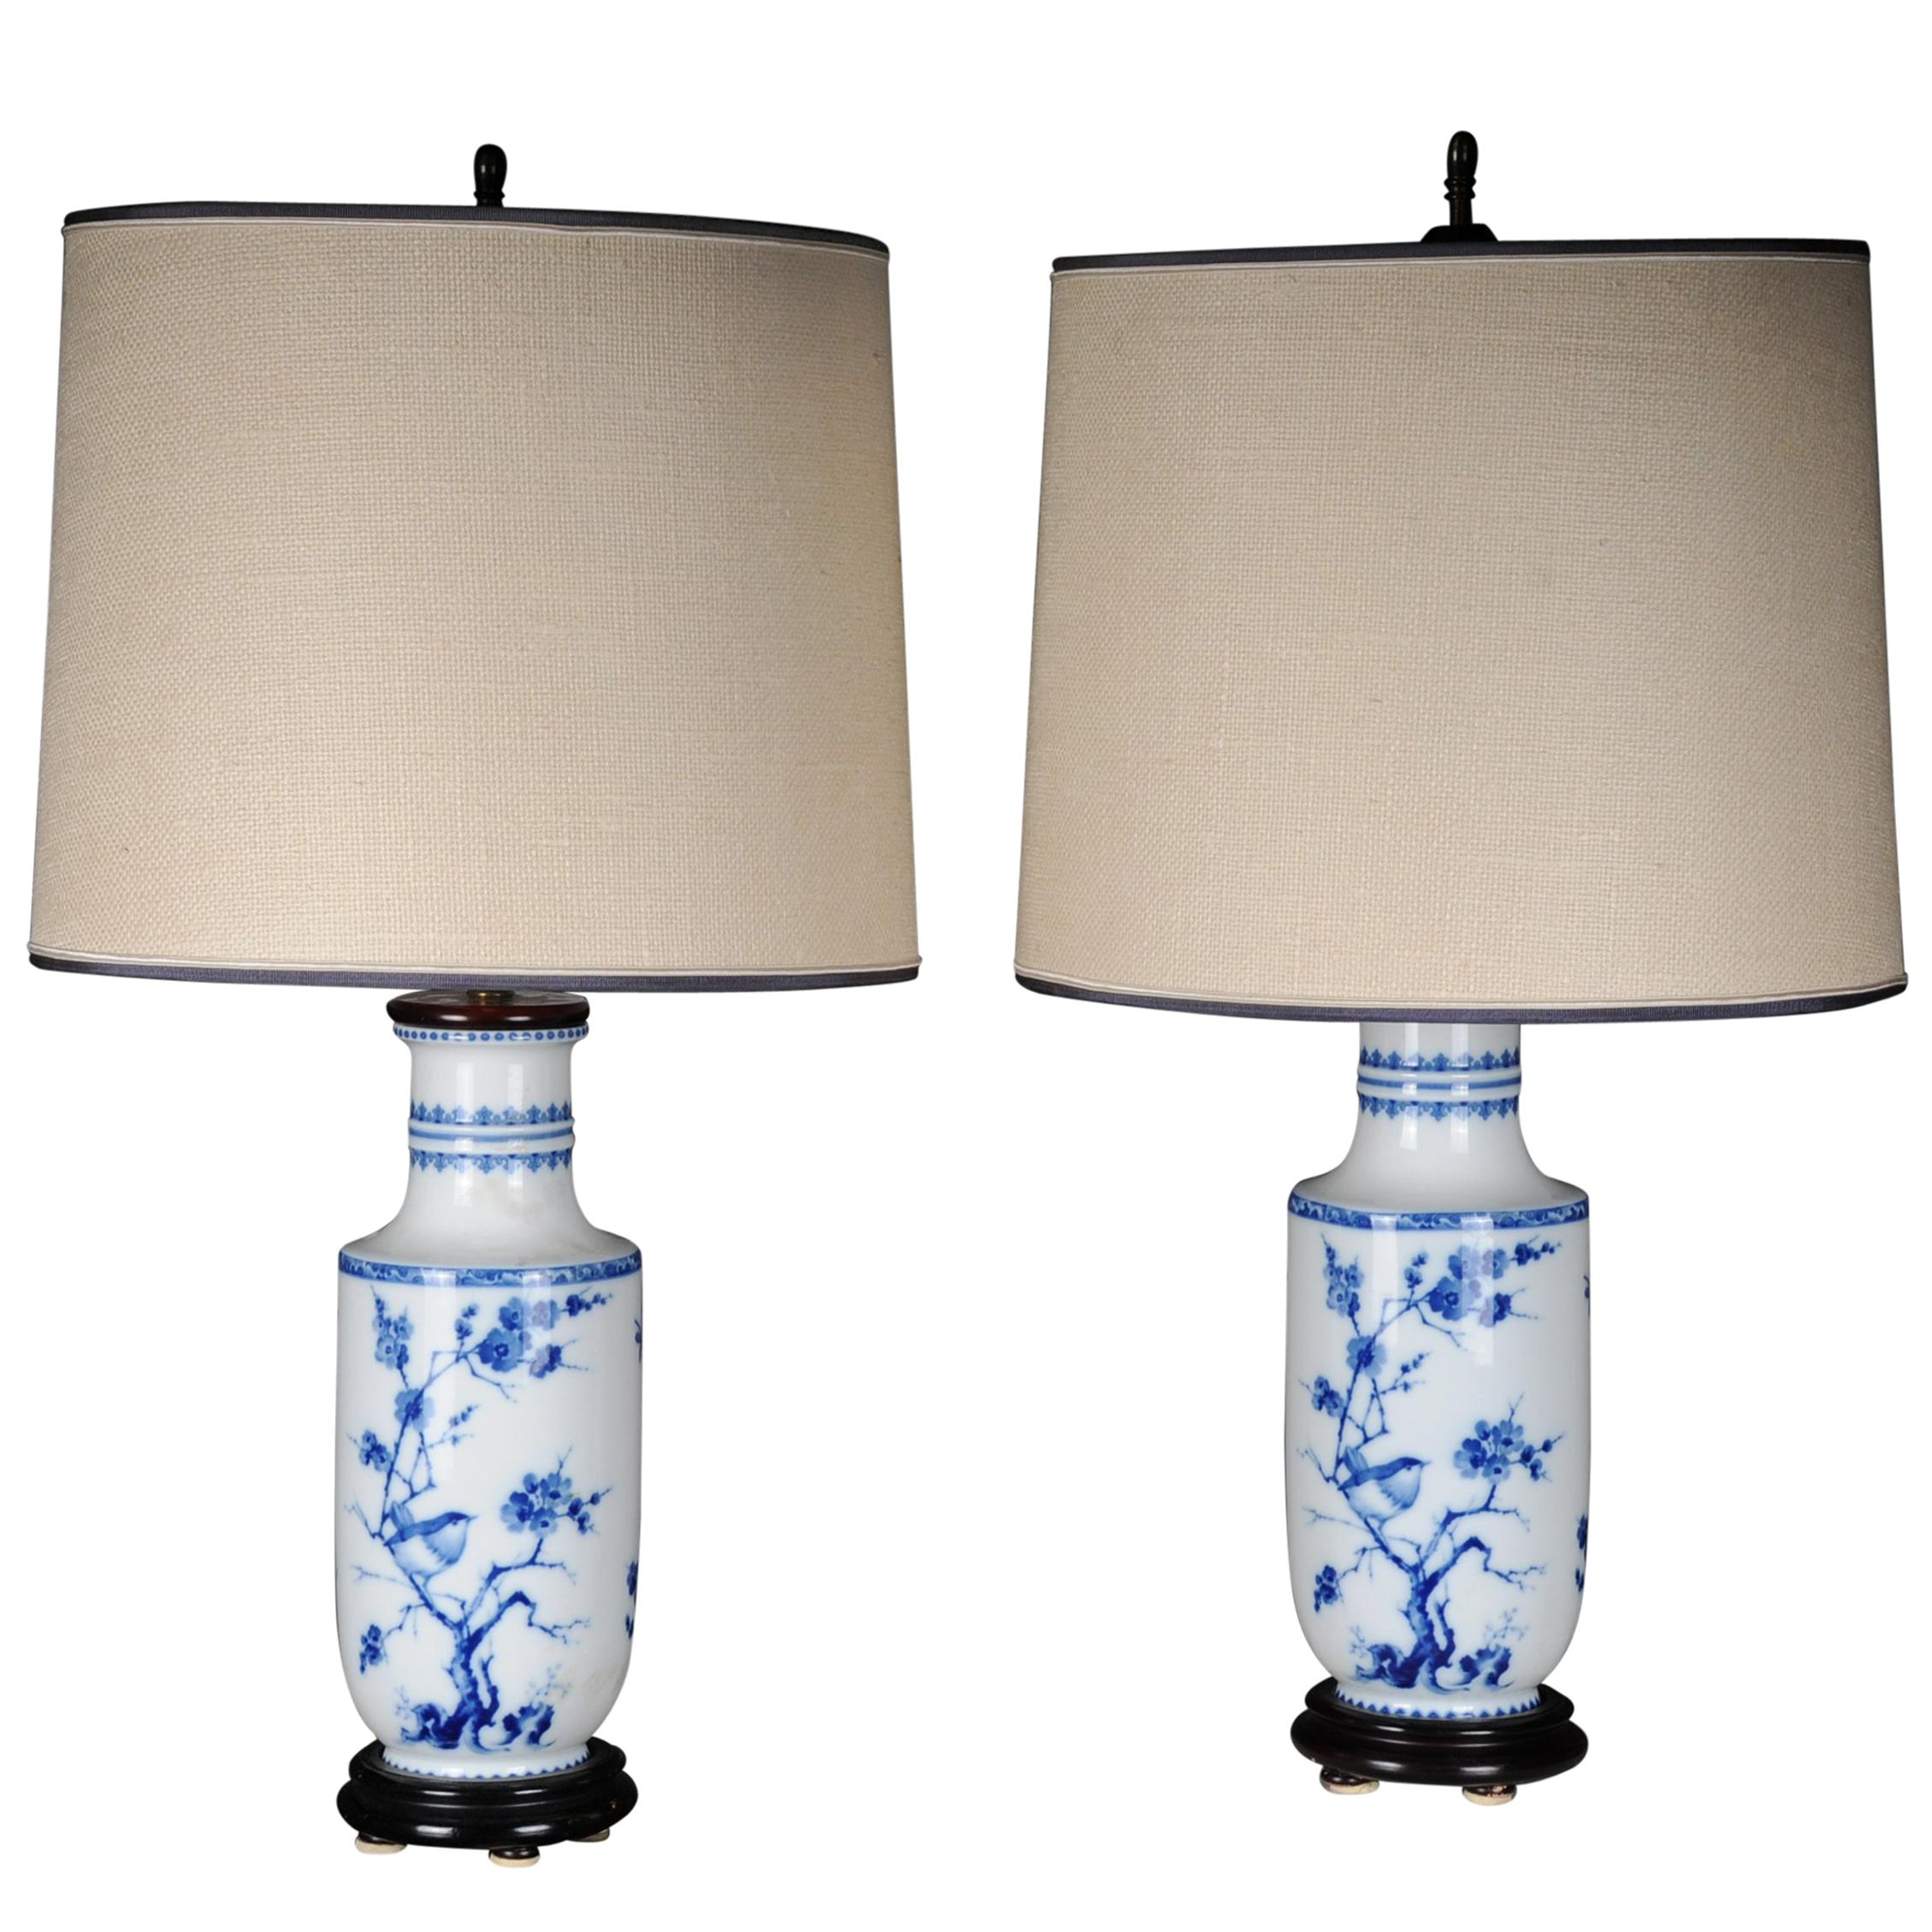 Pair of Asian Table Lamps or Table Lamps, Porcelain, 20th Century Asian Art